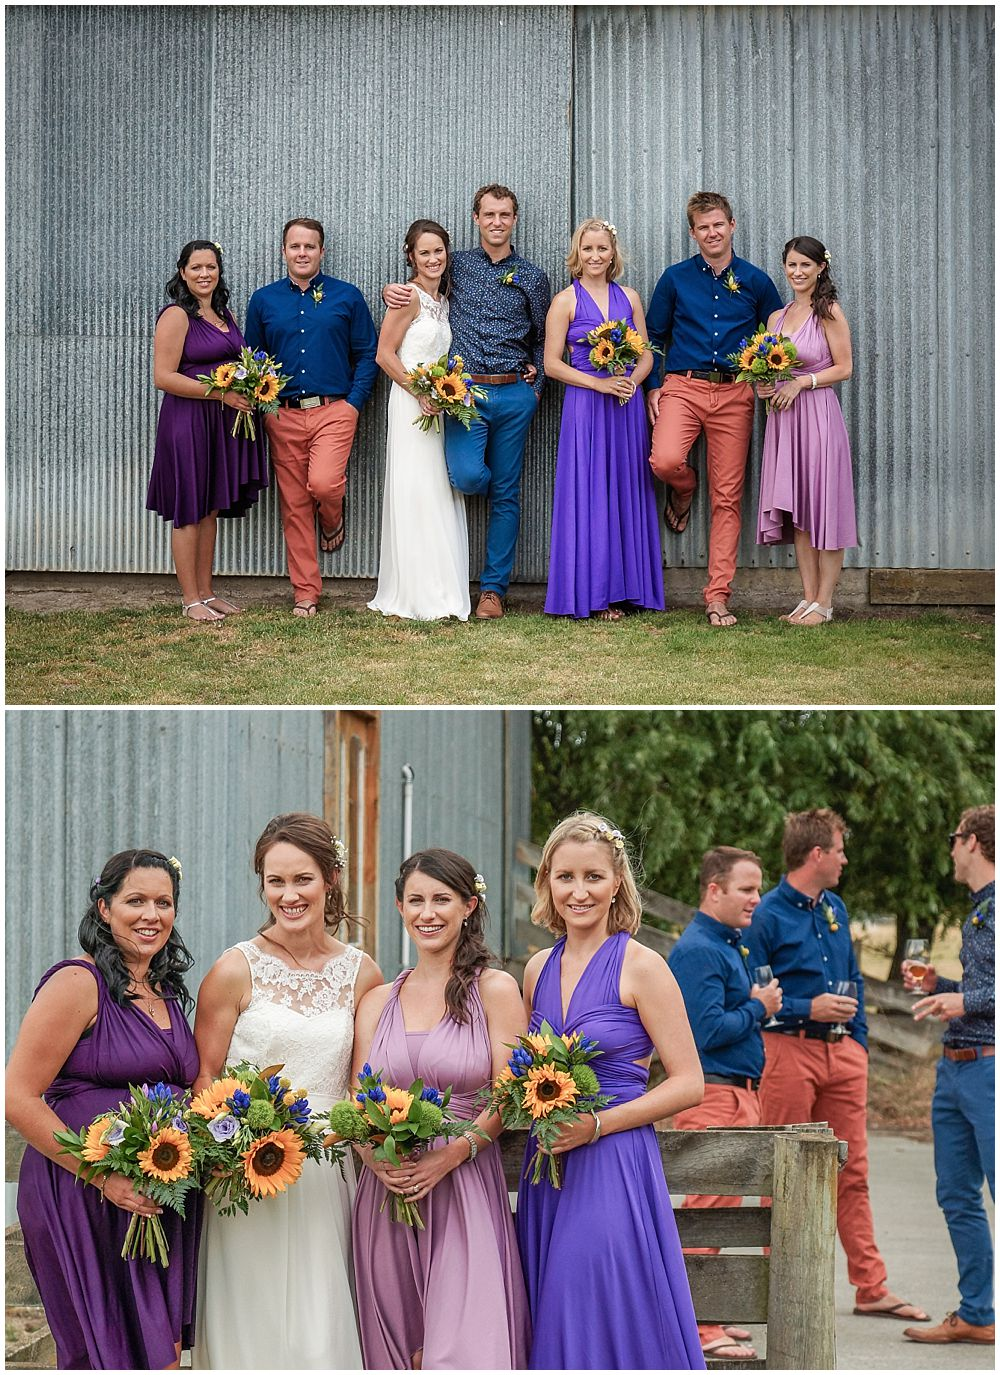 Hampton Lea Gardens Wedding Venue photos of bridal party by the barn